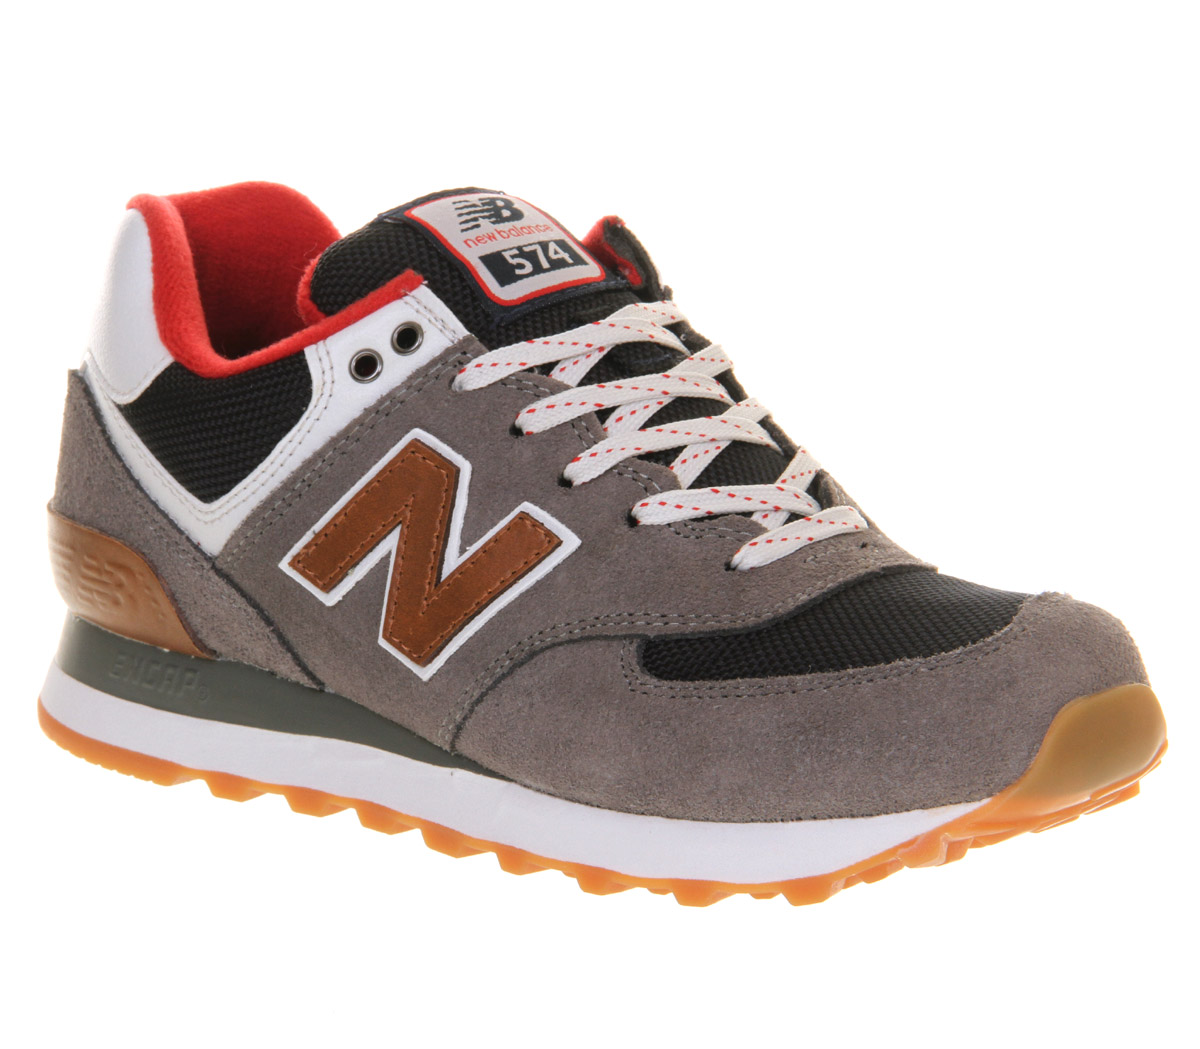 mens new balance new balance m574 grey red brown st trainers shoes. Black Bedroom Furniture Sets. Home Design Ideas